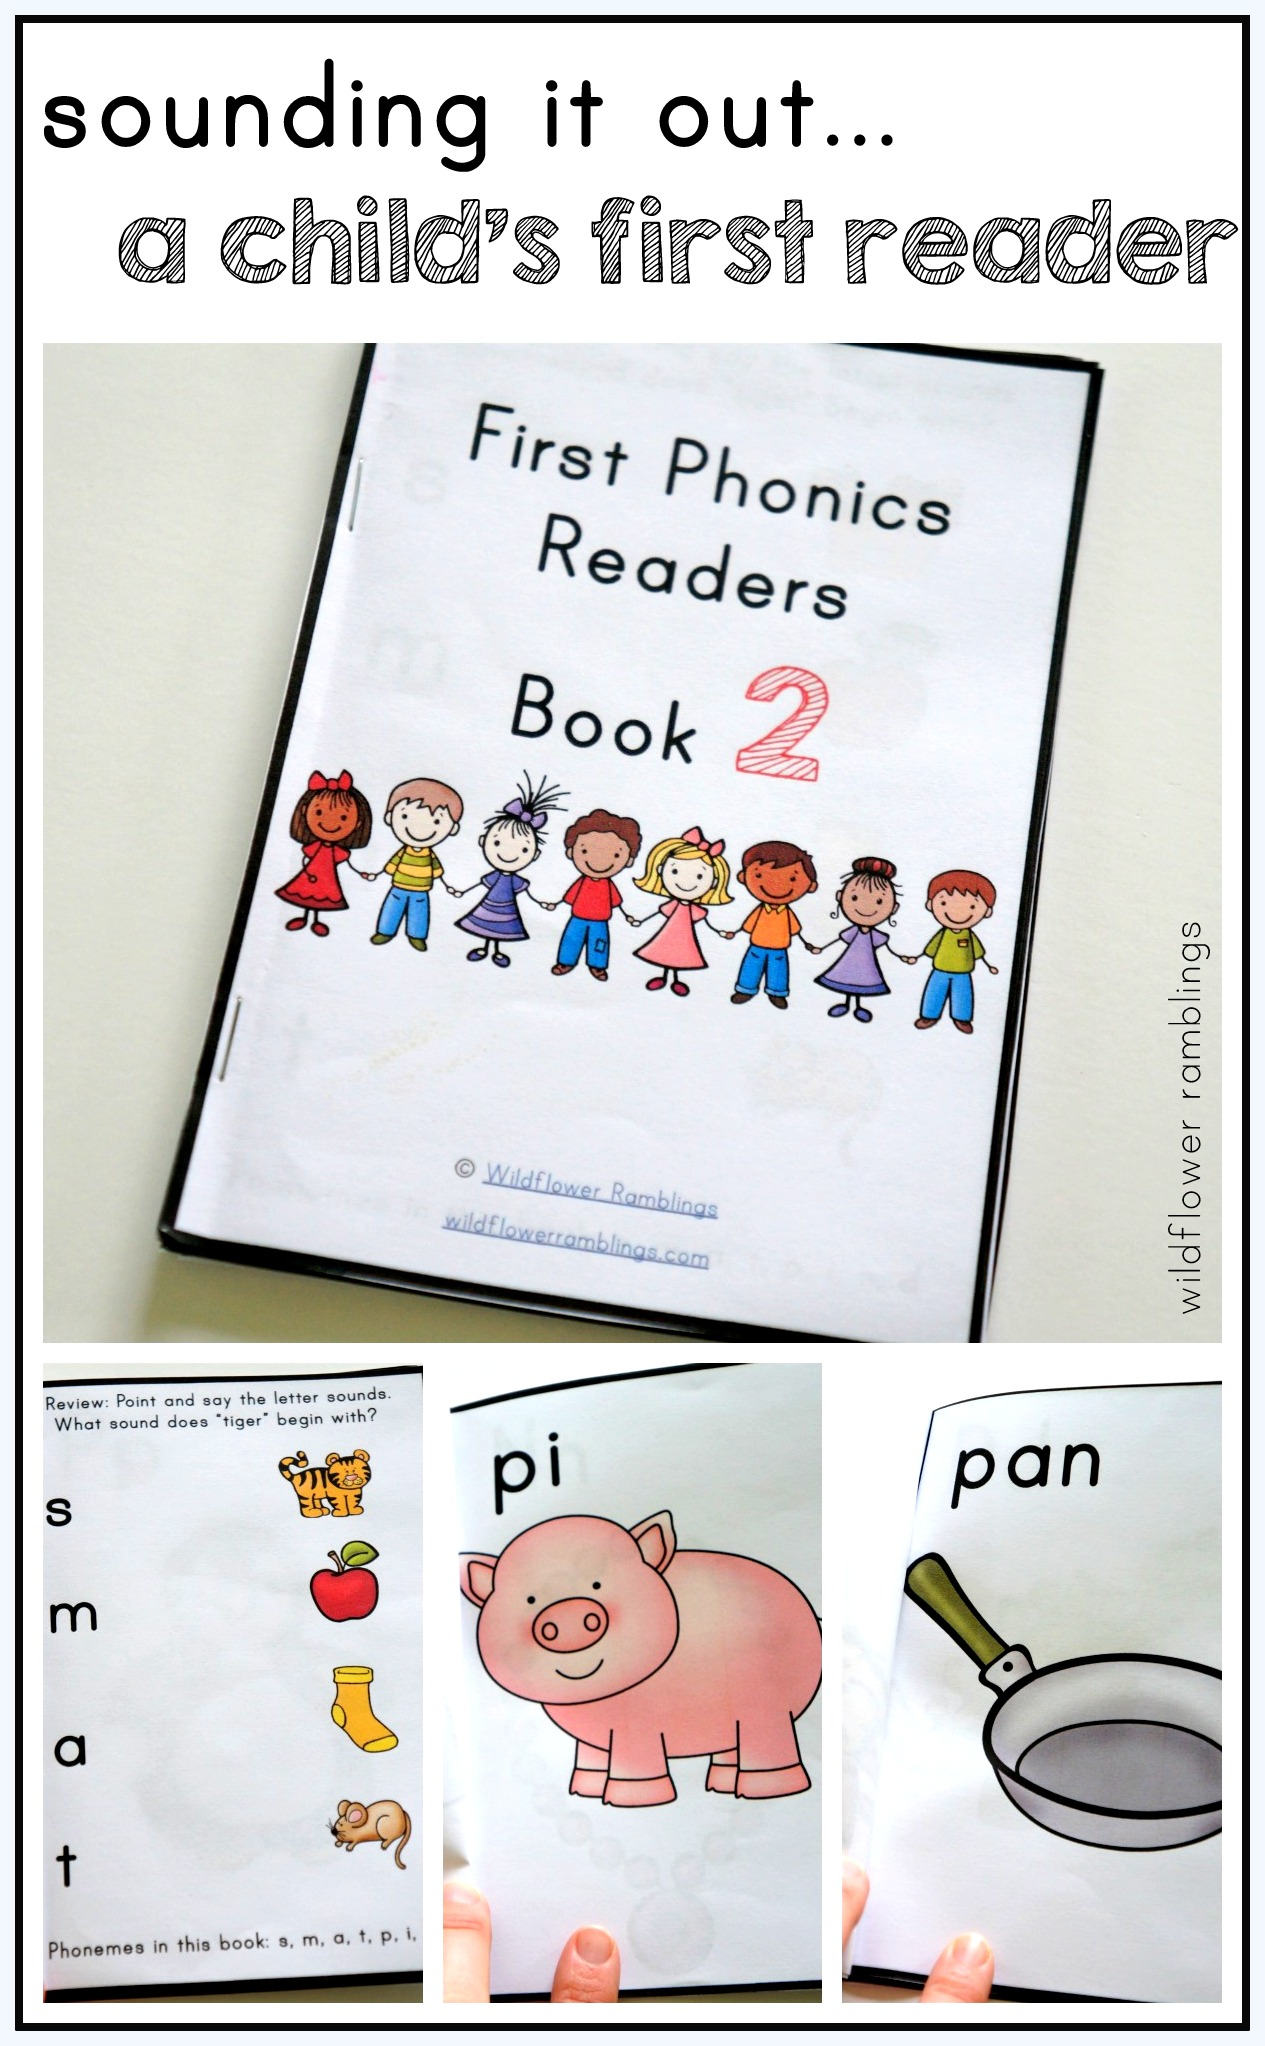 First Phonics Readers Book 2